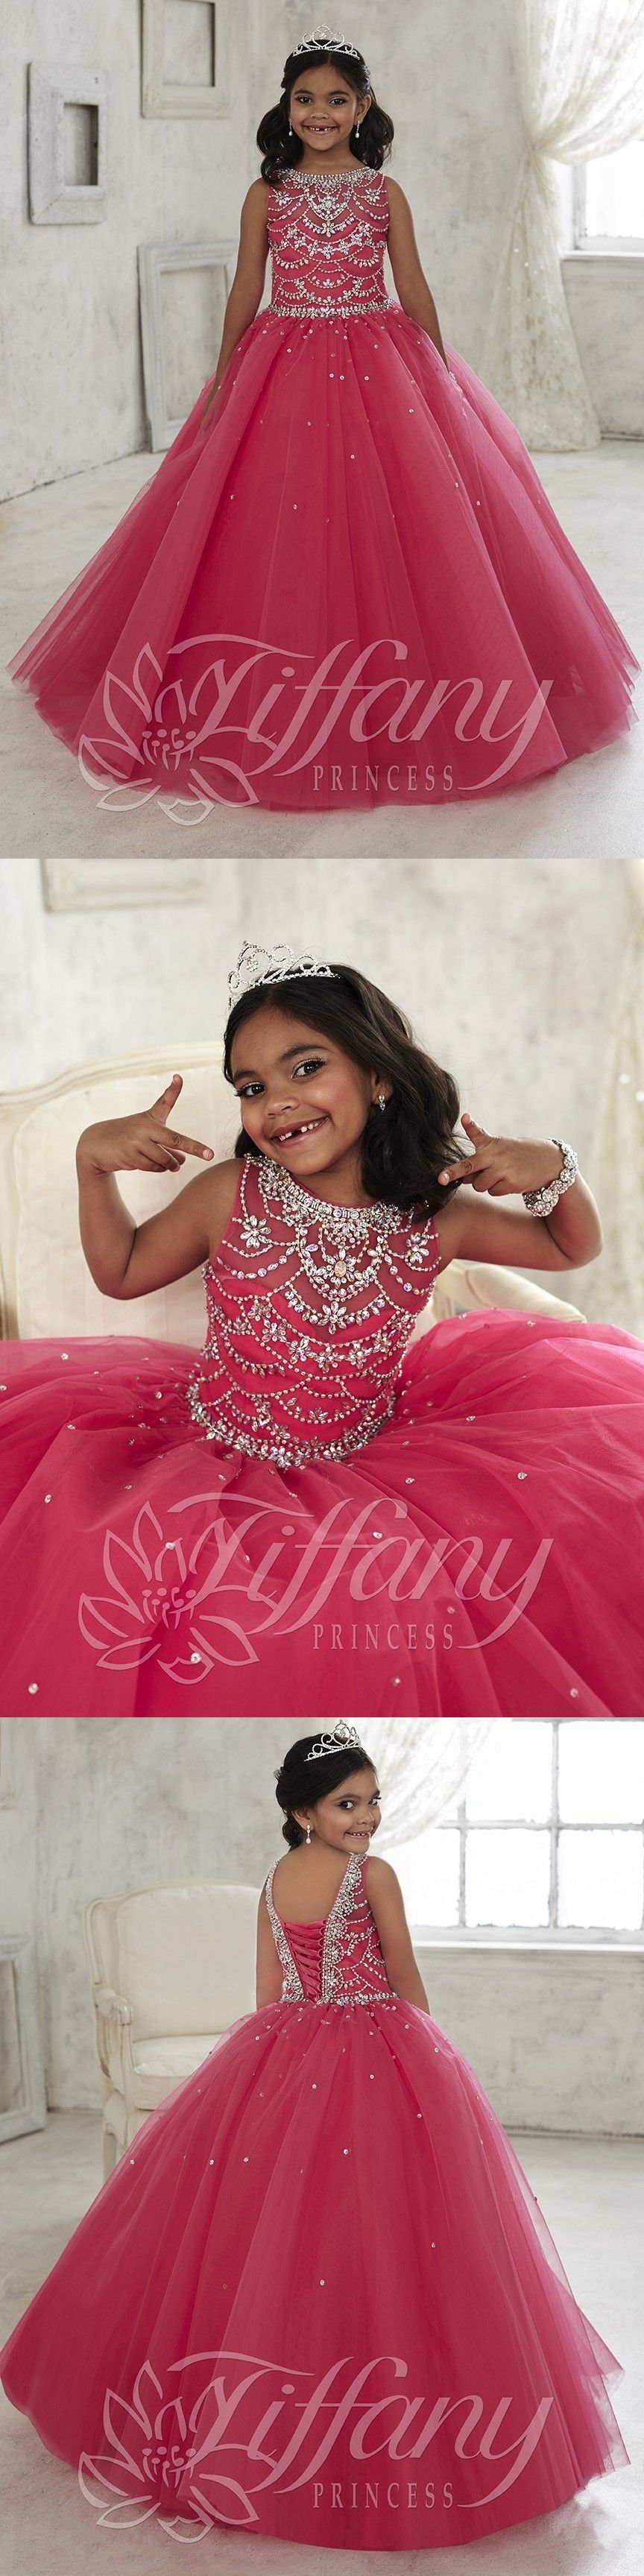 New arrival hot pink beaded crystal pageant dresses for little